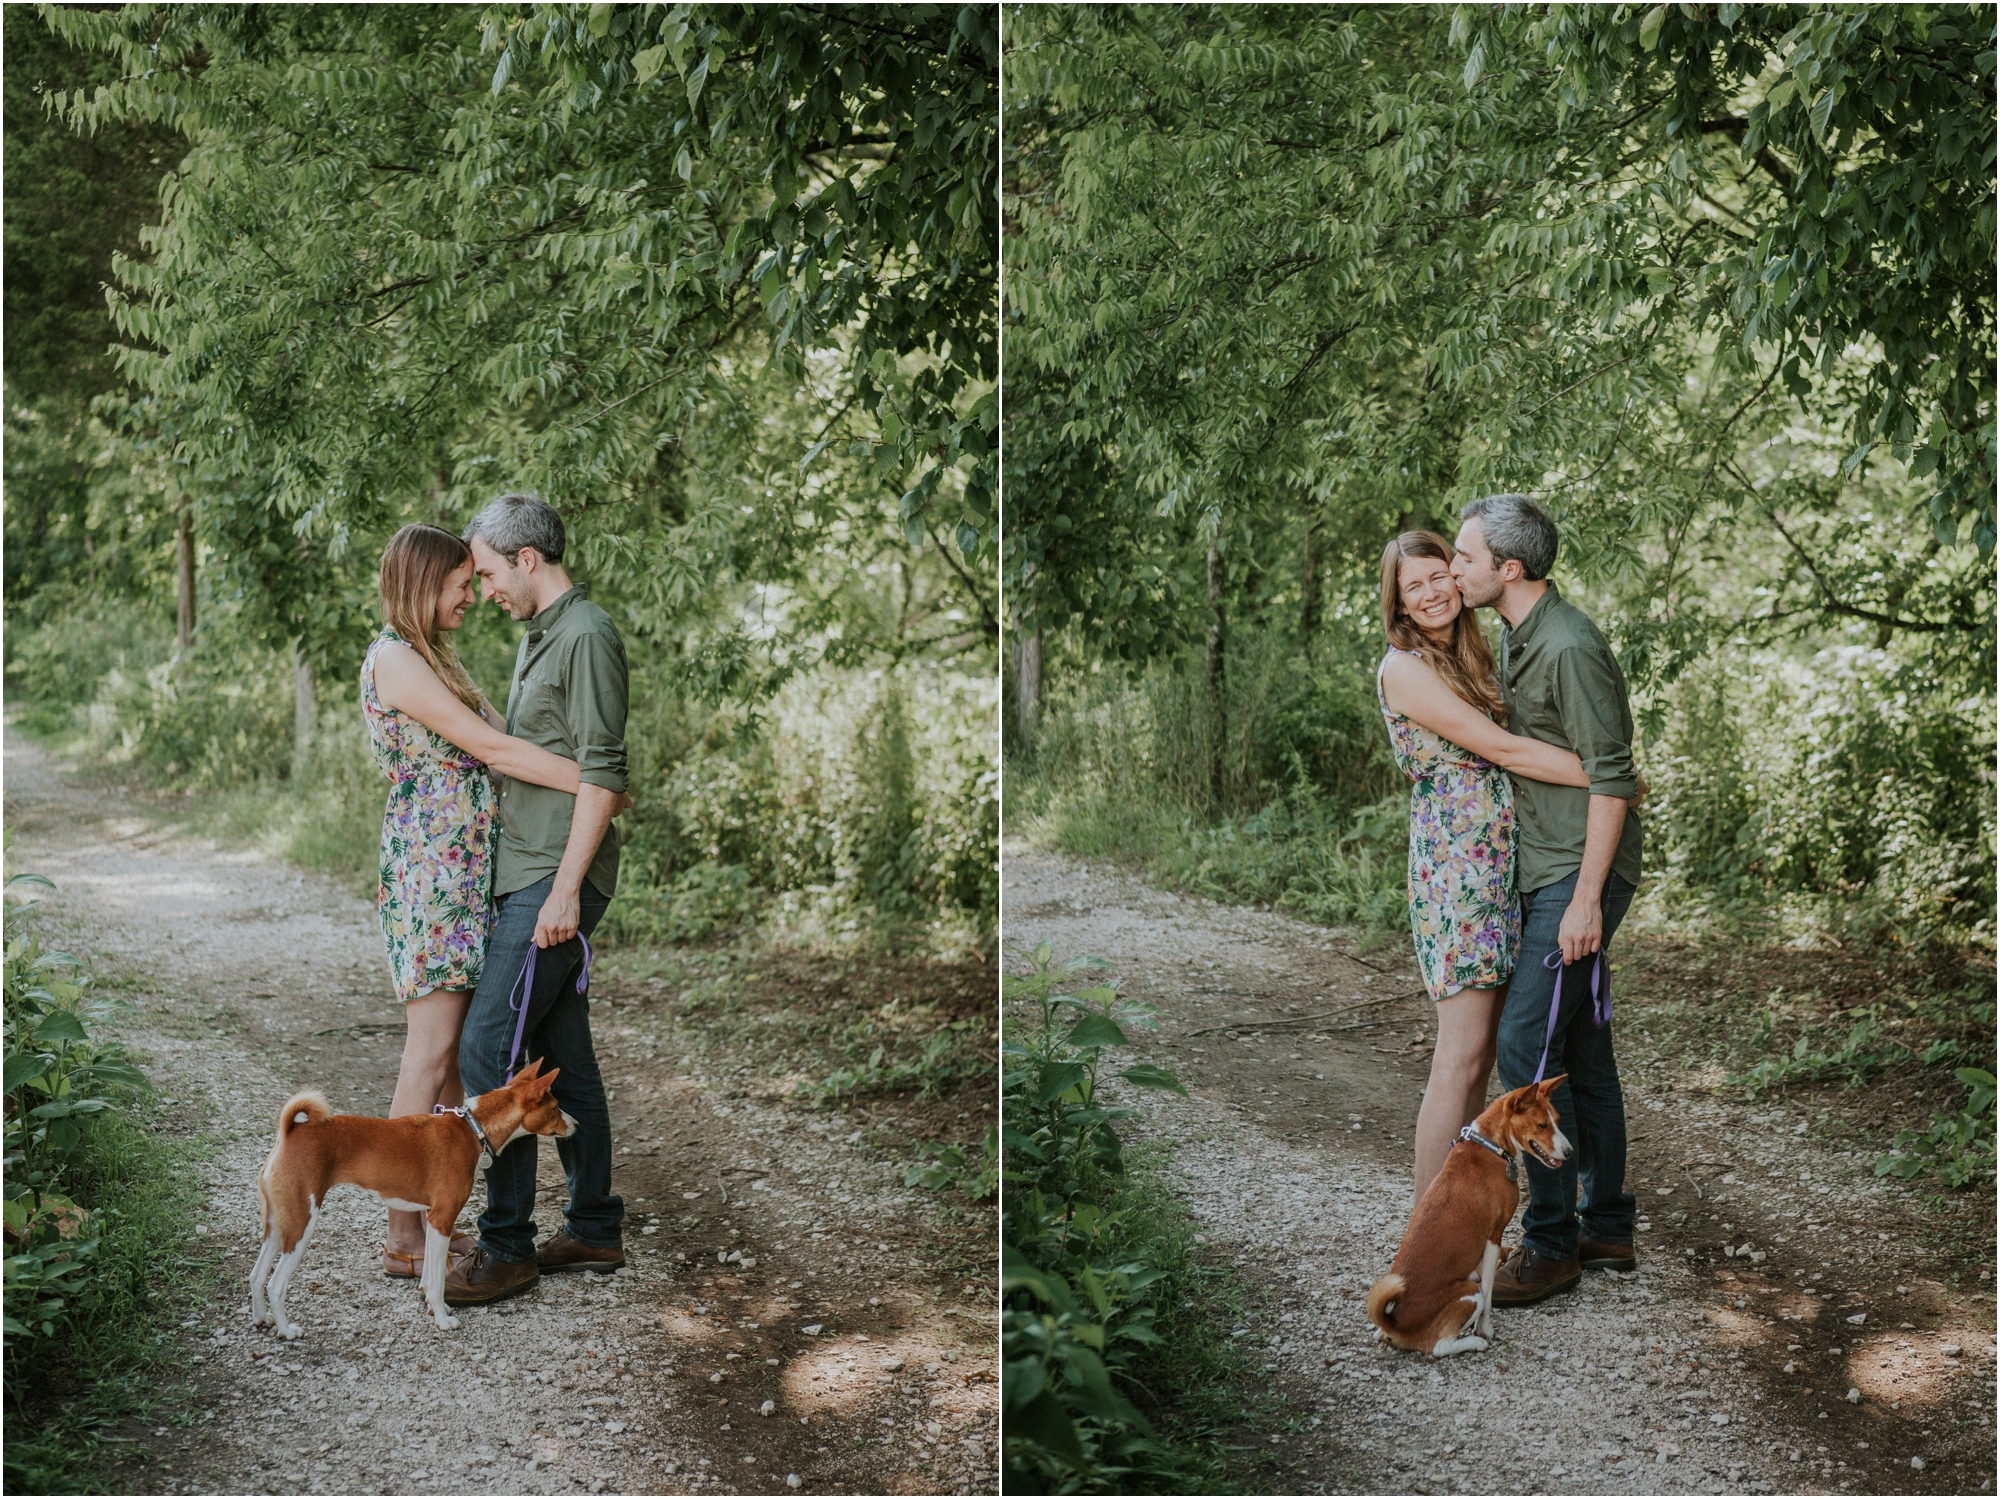 meads-quarry-ijams-nature-center-knoxville-tennessee-engagement-session-summer-northeast-tn-adventurous-outdoors-lake-katy-sergent_0001.jpg